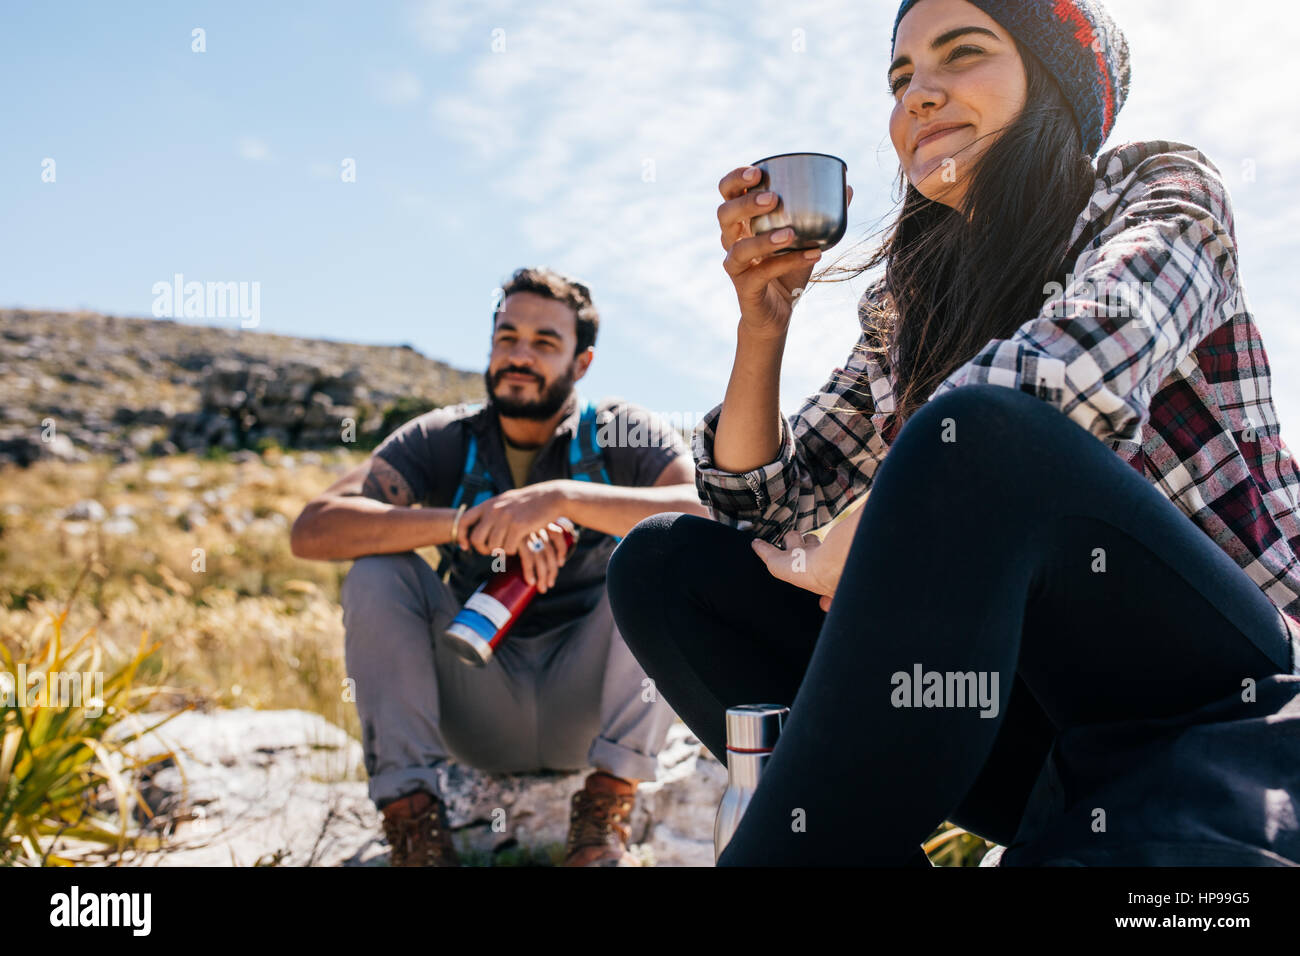 Young woman drinking coffee and resting with friend during hike. Two young friends taking a break during hike. Stock Photo